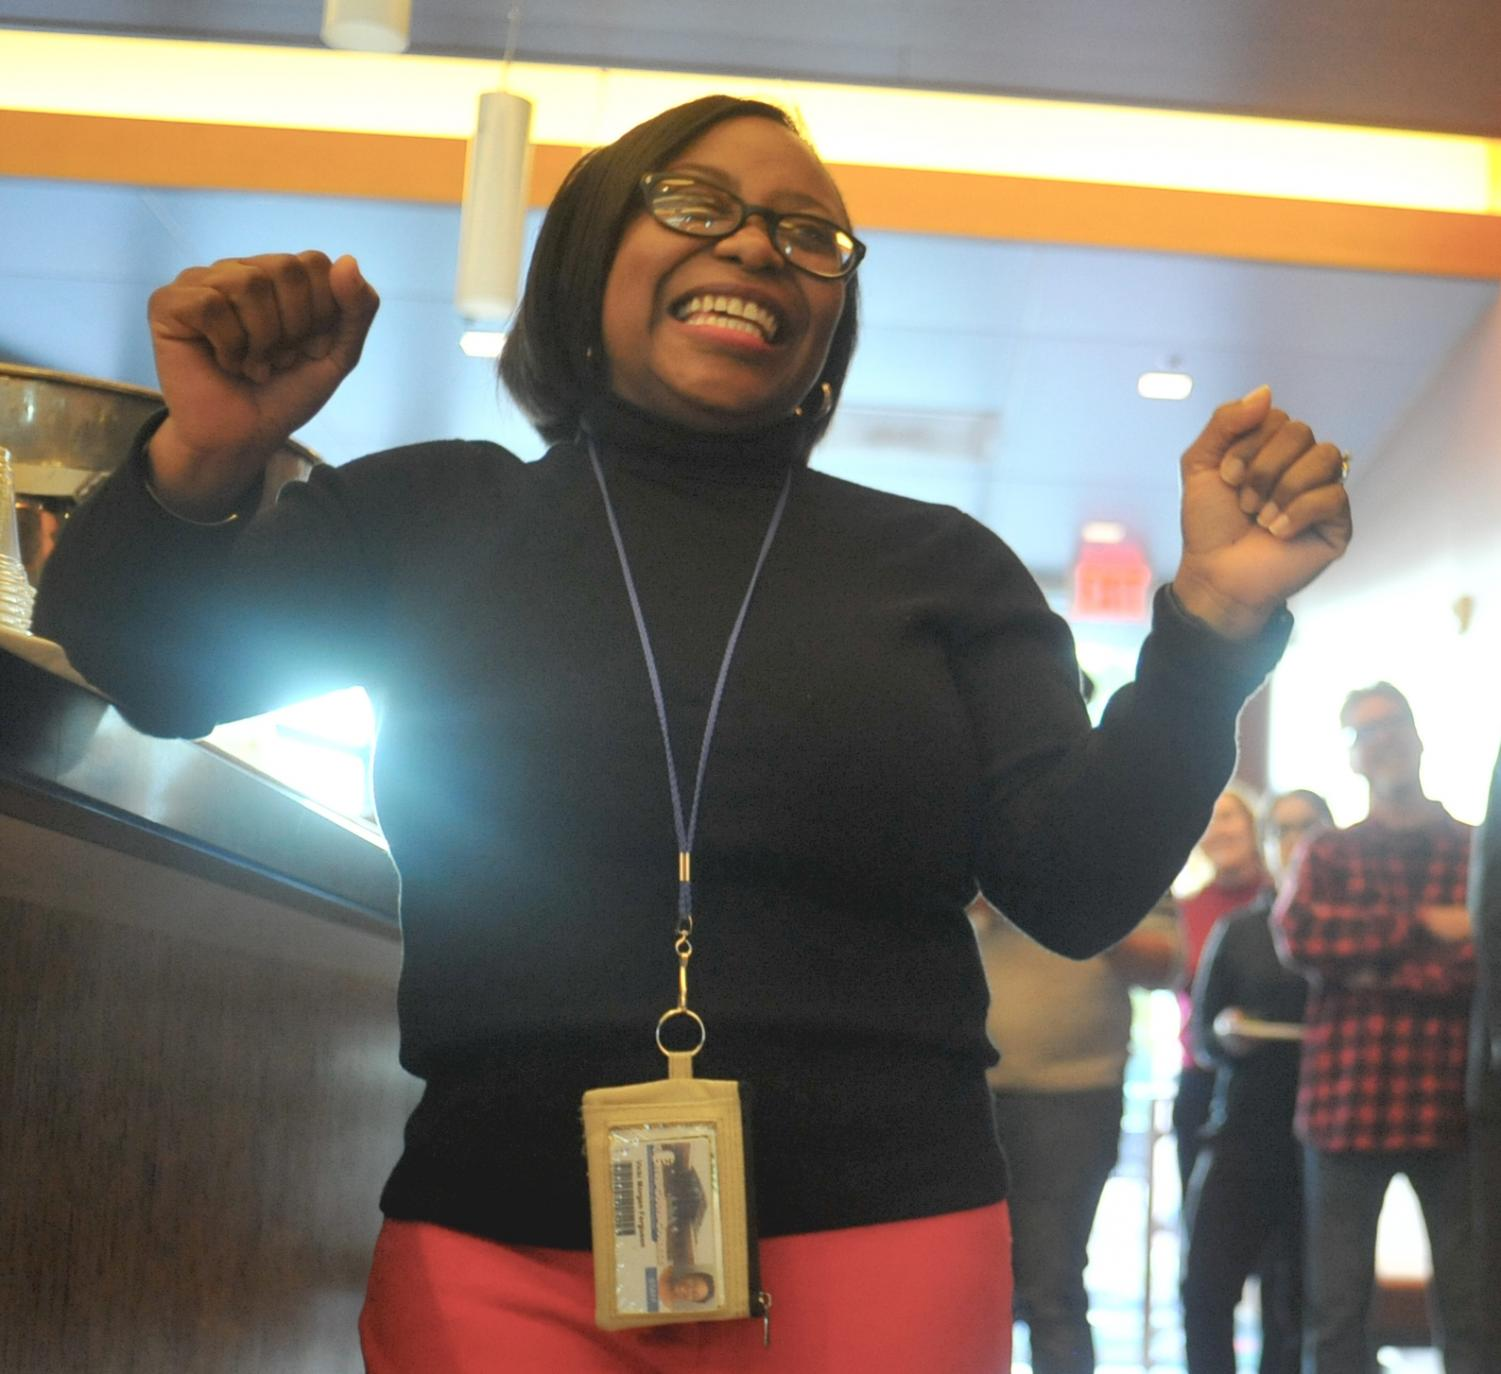 Former Dean of Student Services Vikki Ferguson dances during a song being sung to her by attendees of her going away celebration in Aqua Terra Grill.